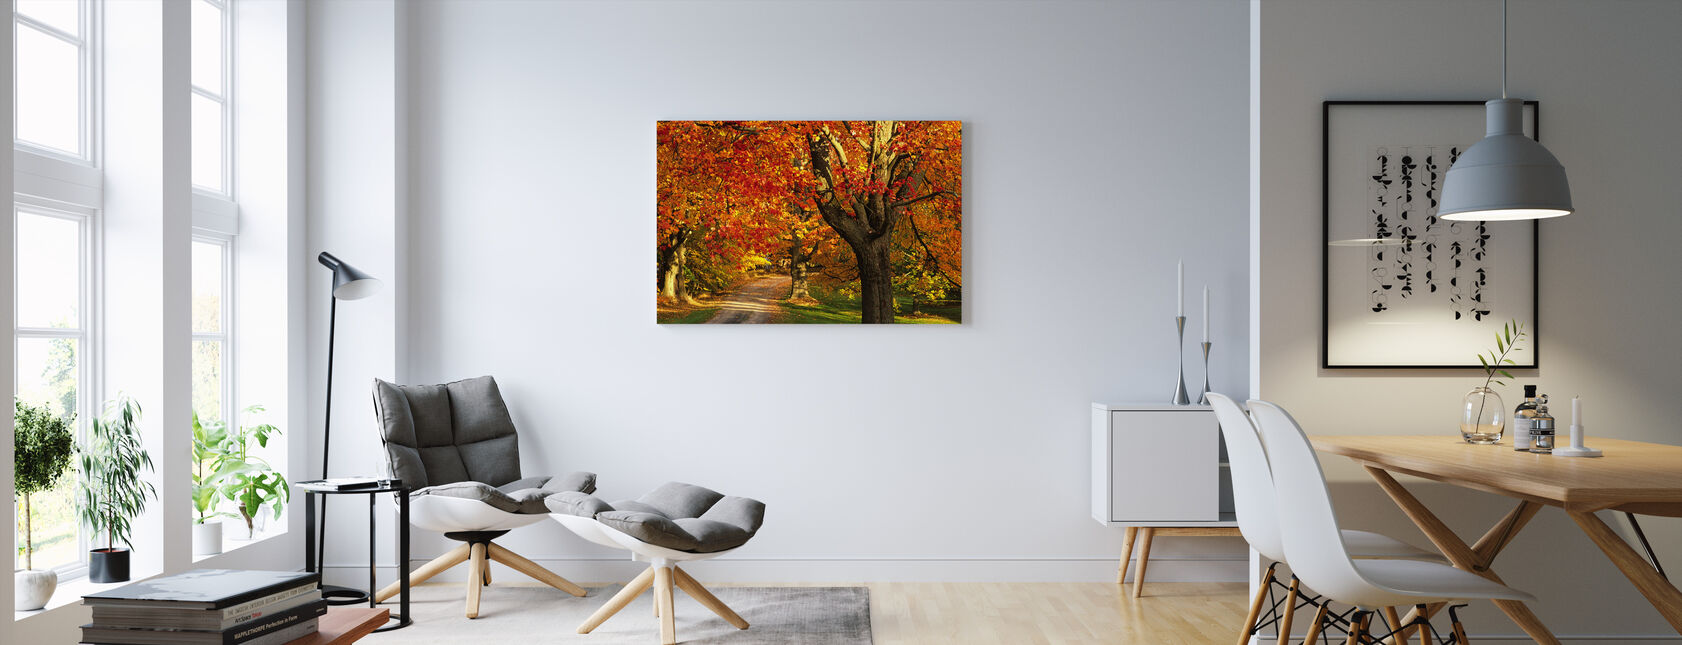 Golden Maple Tree - Canvas print - Living Room